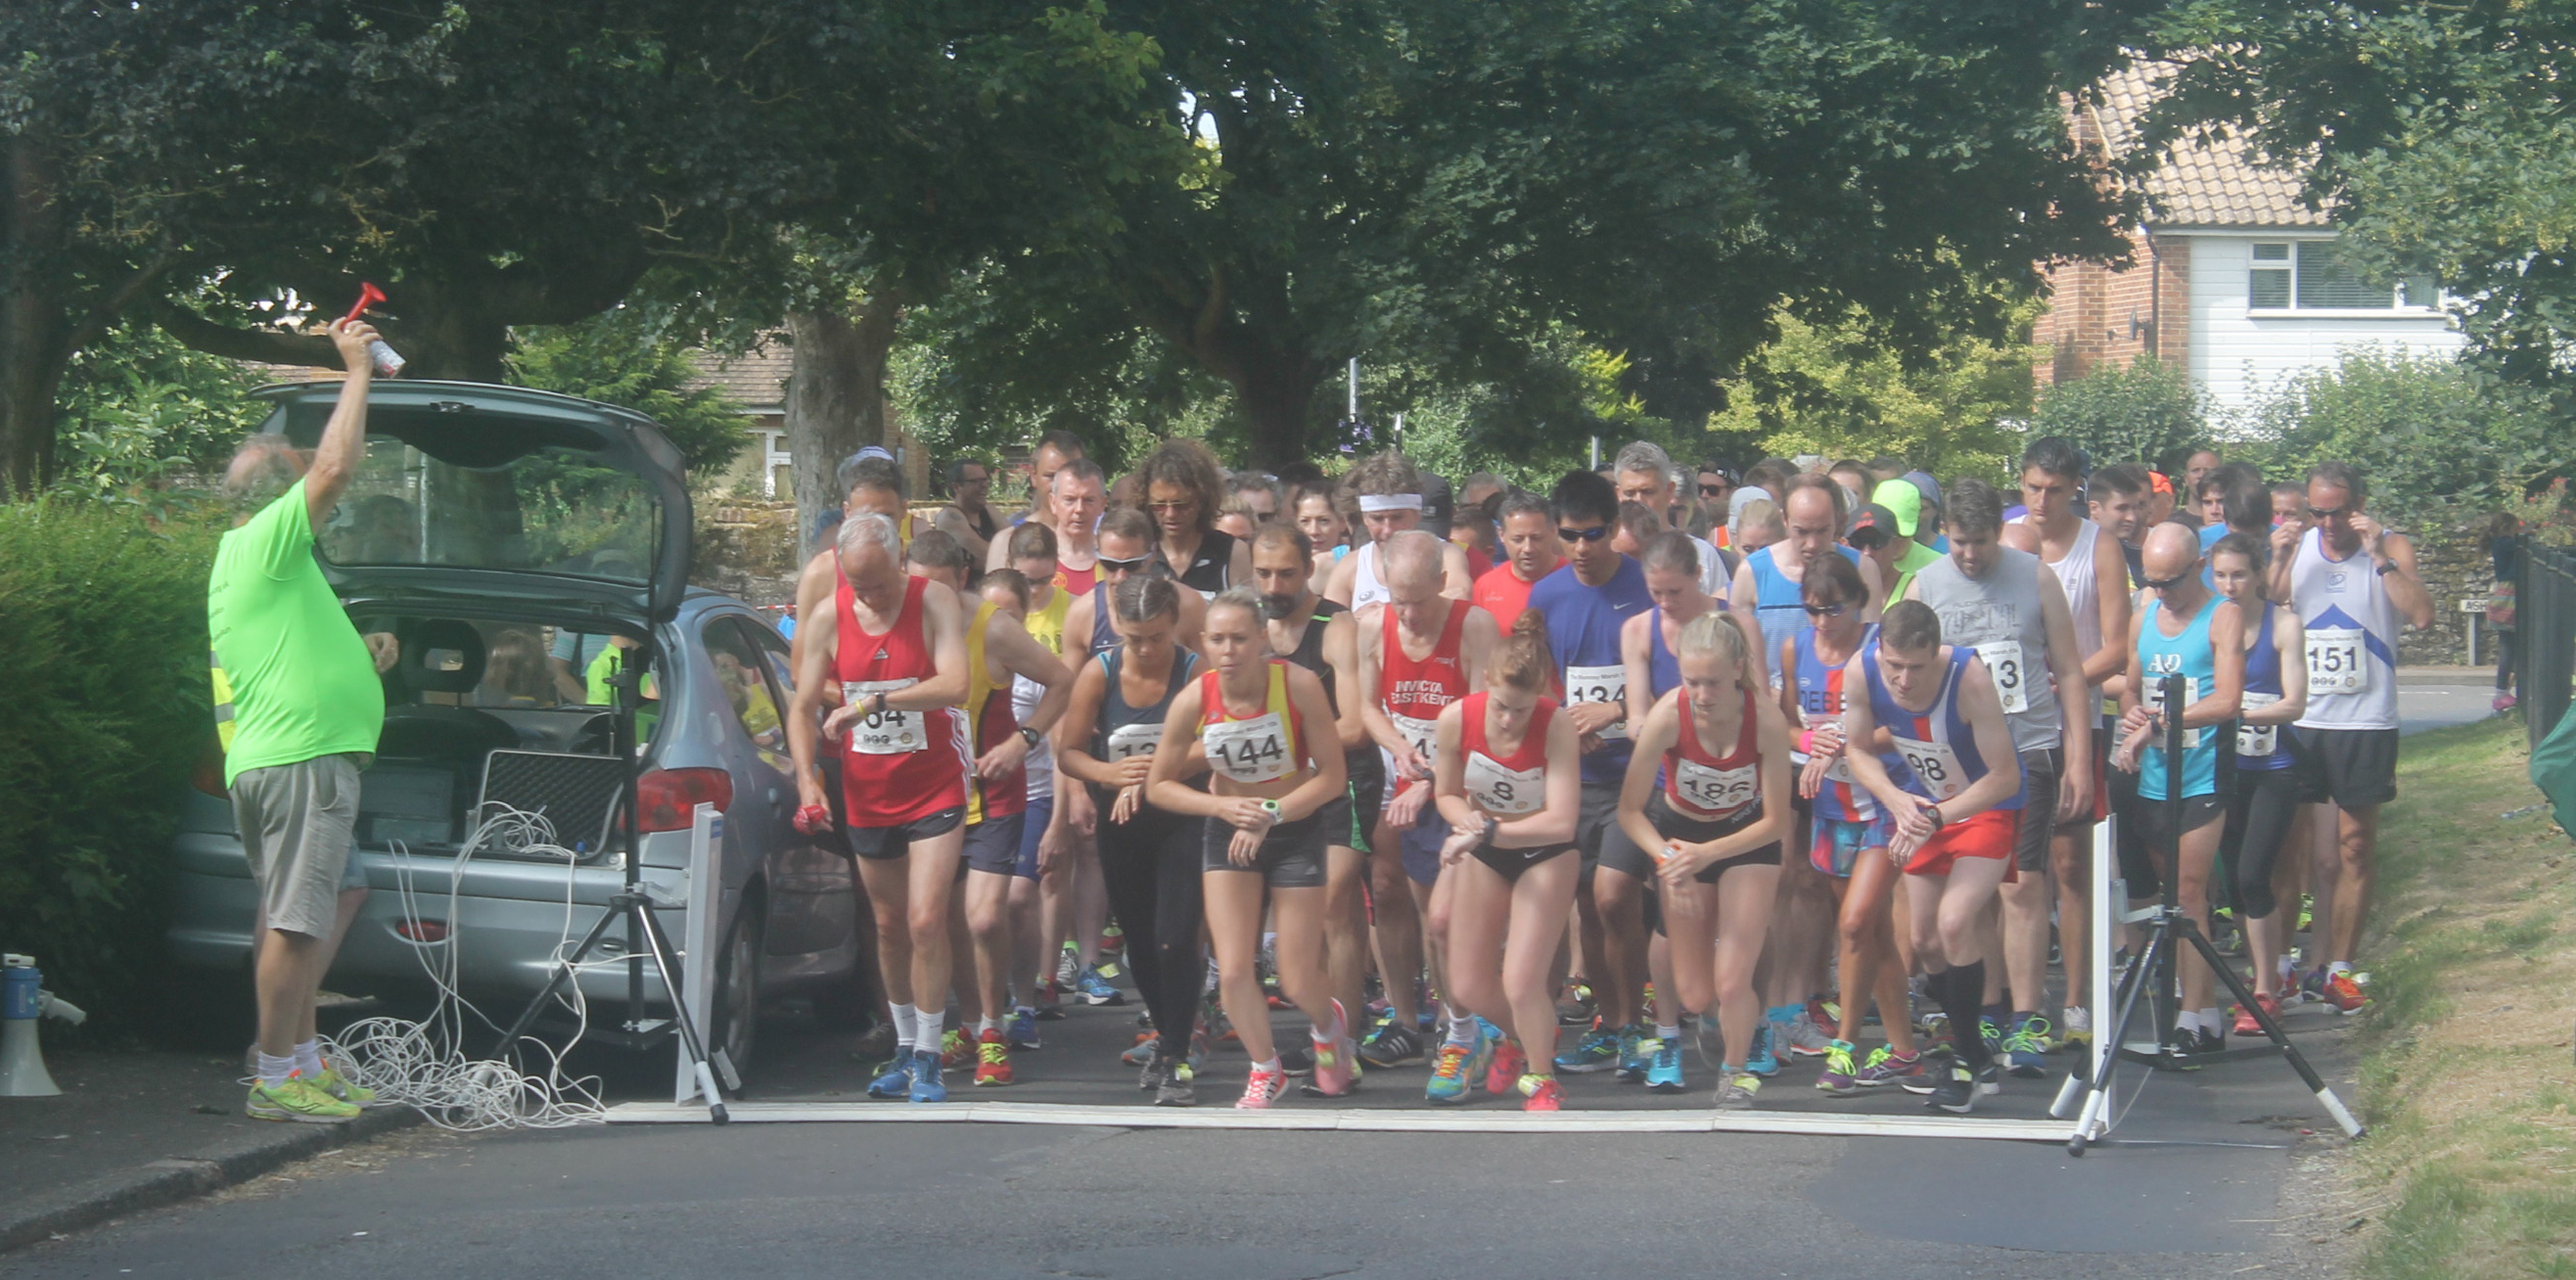 Over 200 entries for the New Romney 10K